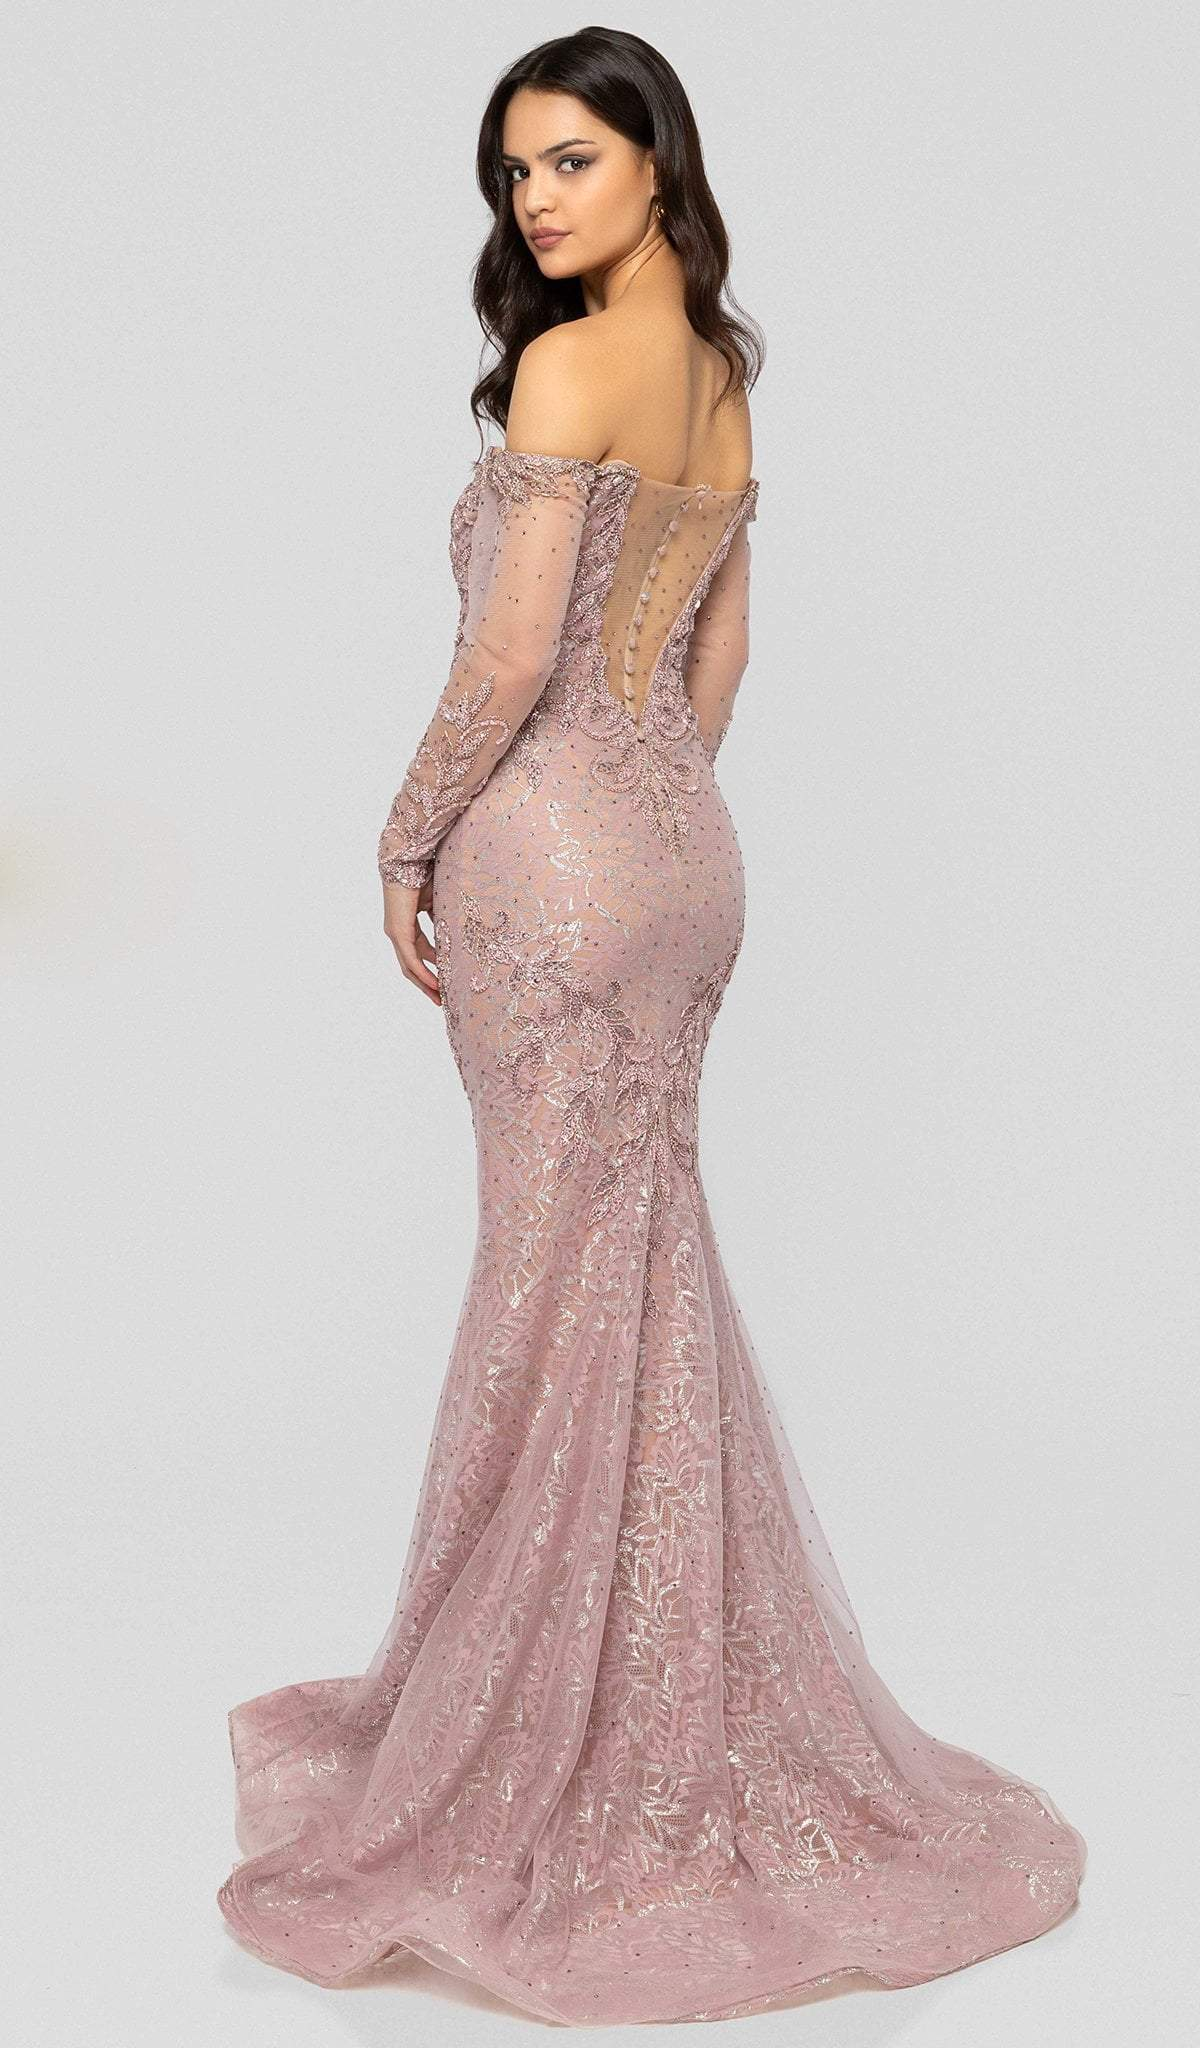 Terani Couture - 1913GL9587 Embellished Plunging Off-Shoulder Dress In Pink and Nude